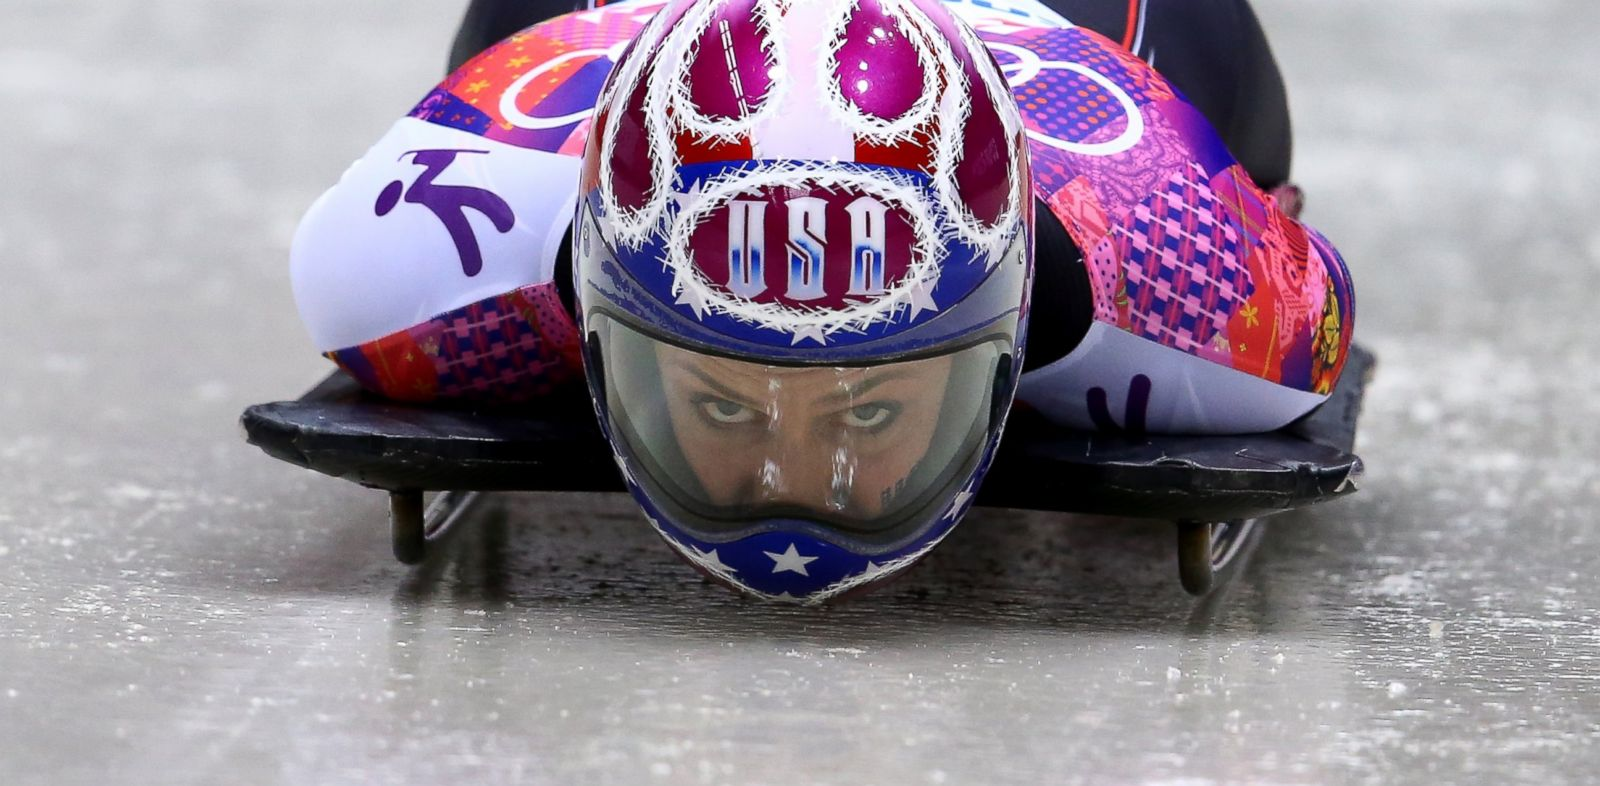 PHOTO: Noelle Pikus-Pace of the United States competes a run in the womens skeleton during the 2014 Sochi Winter Olympics on Feb. 14, 2014 in Sochi, Russia.